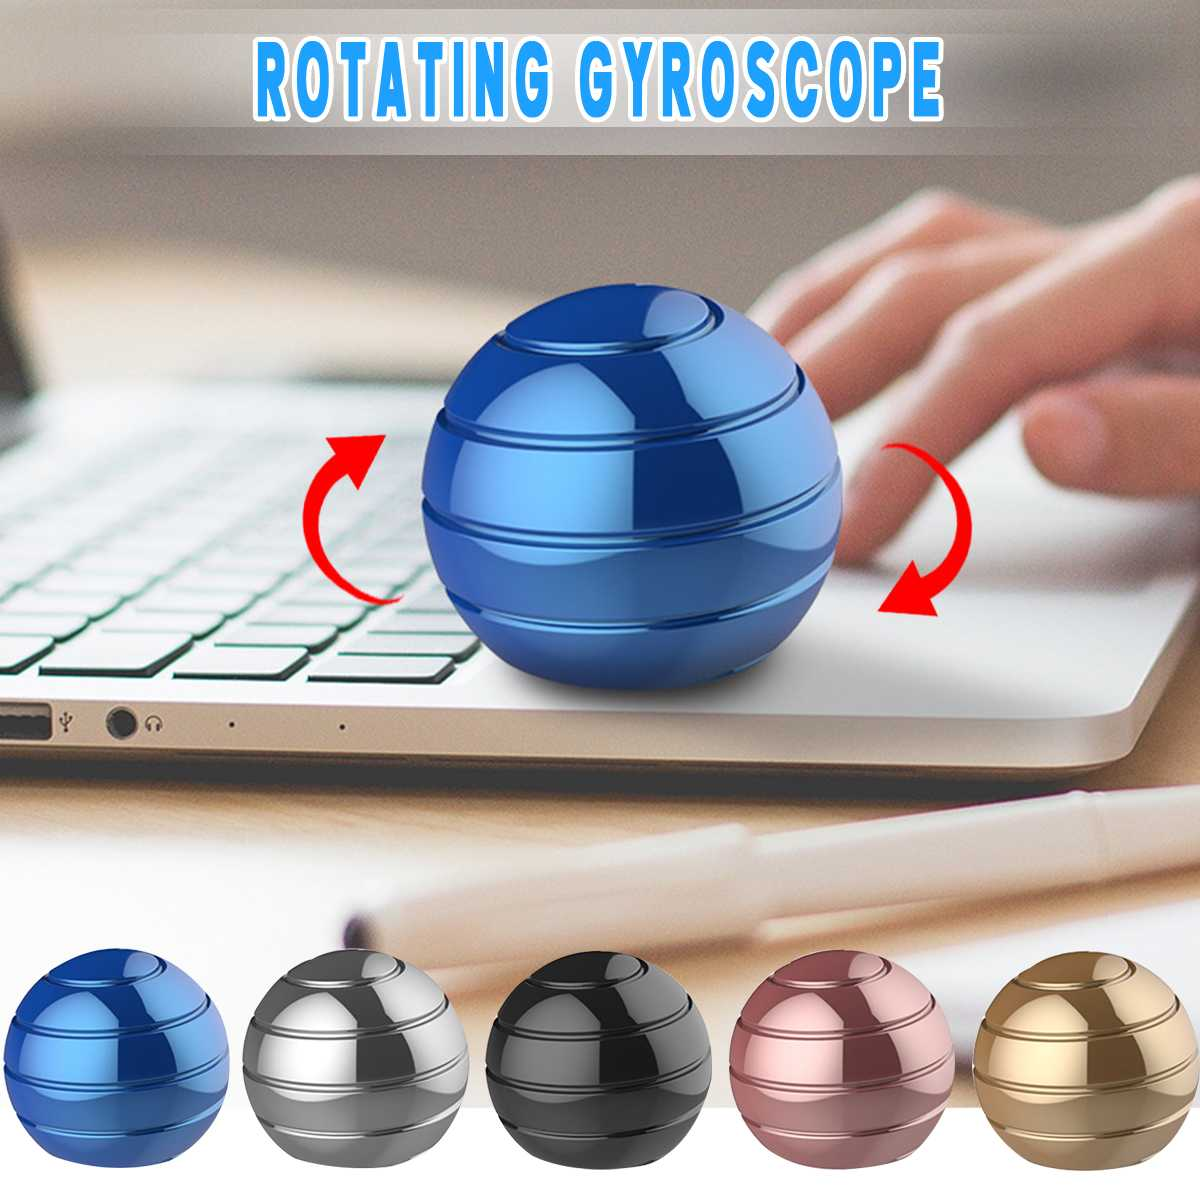 Adult Finger Toy Desktop Decompression Rotating Spherical Gyroscope Gyro Optical Illusion Active Desk Toy Metal Optical Flowing